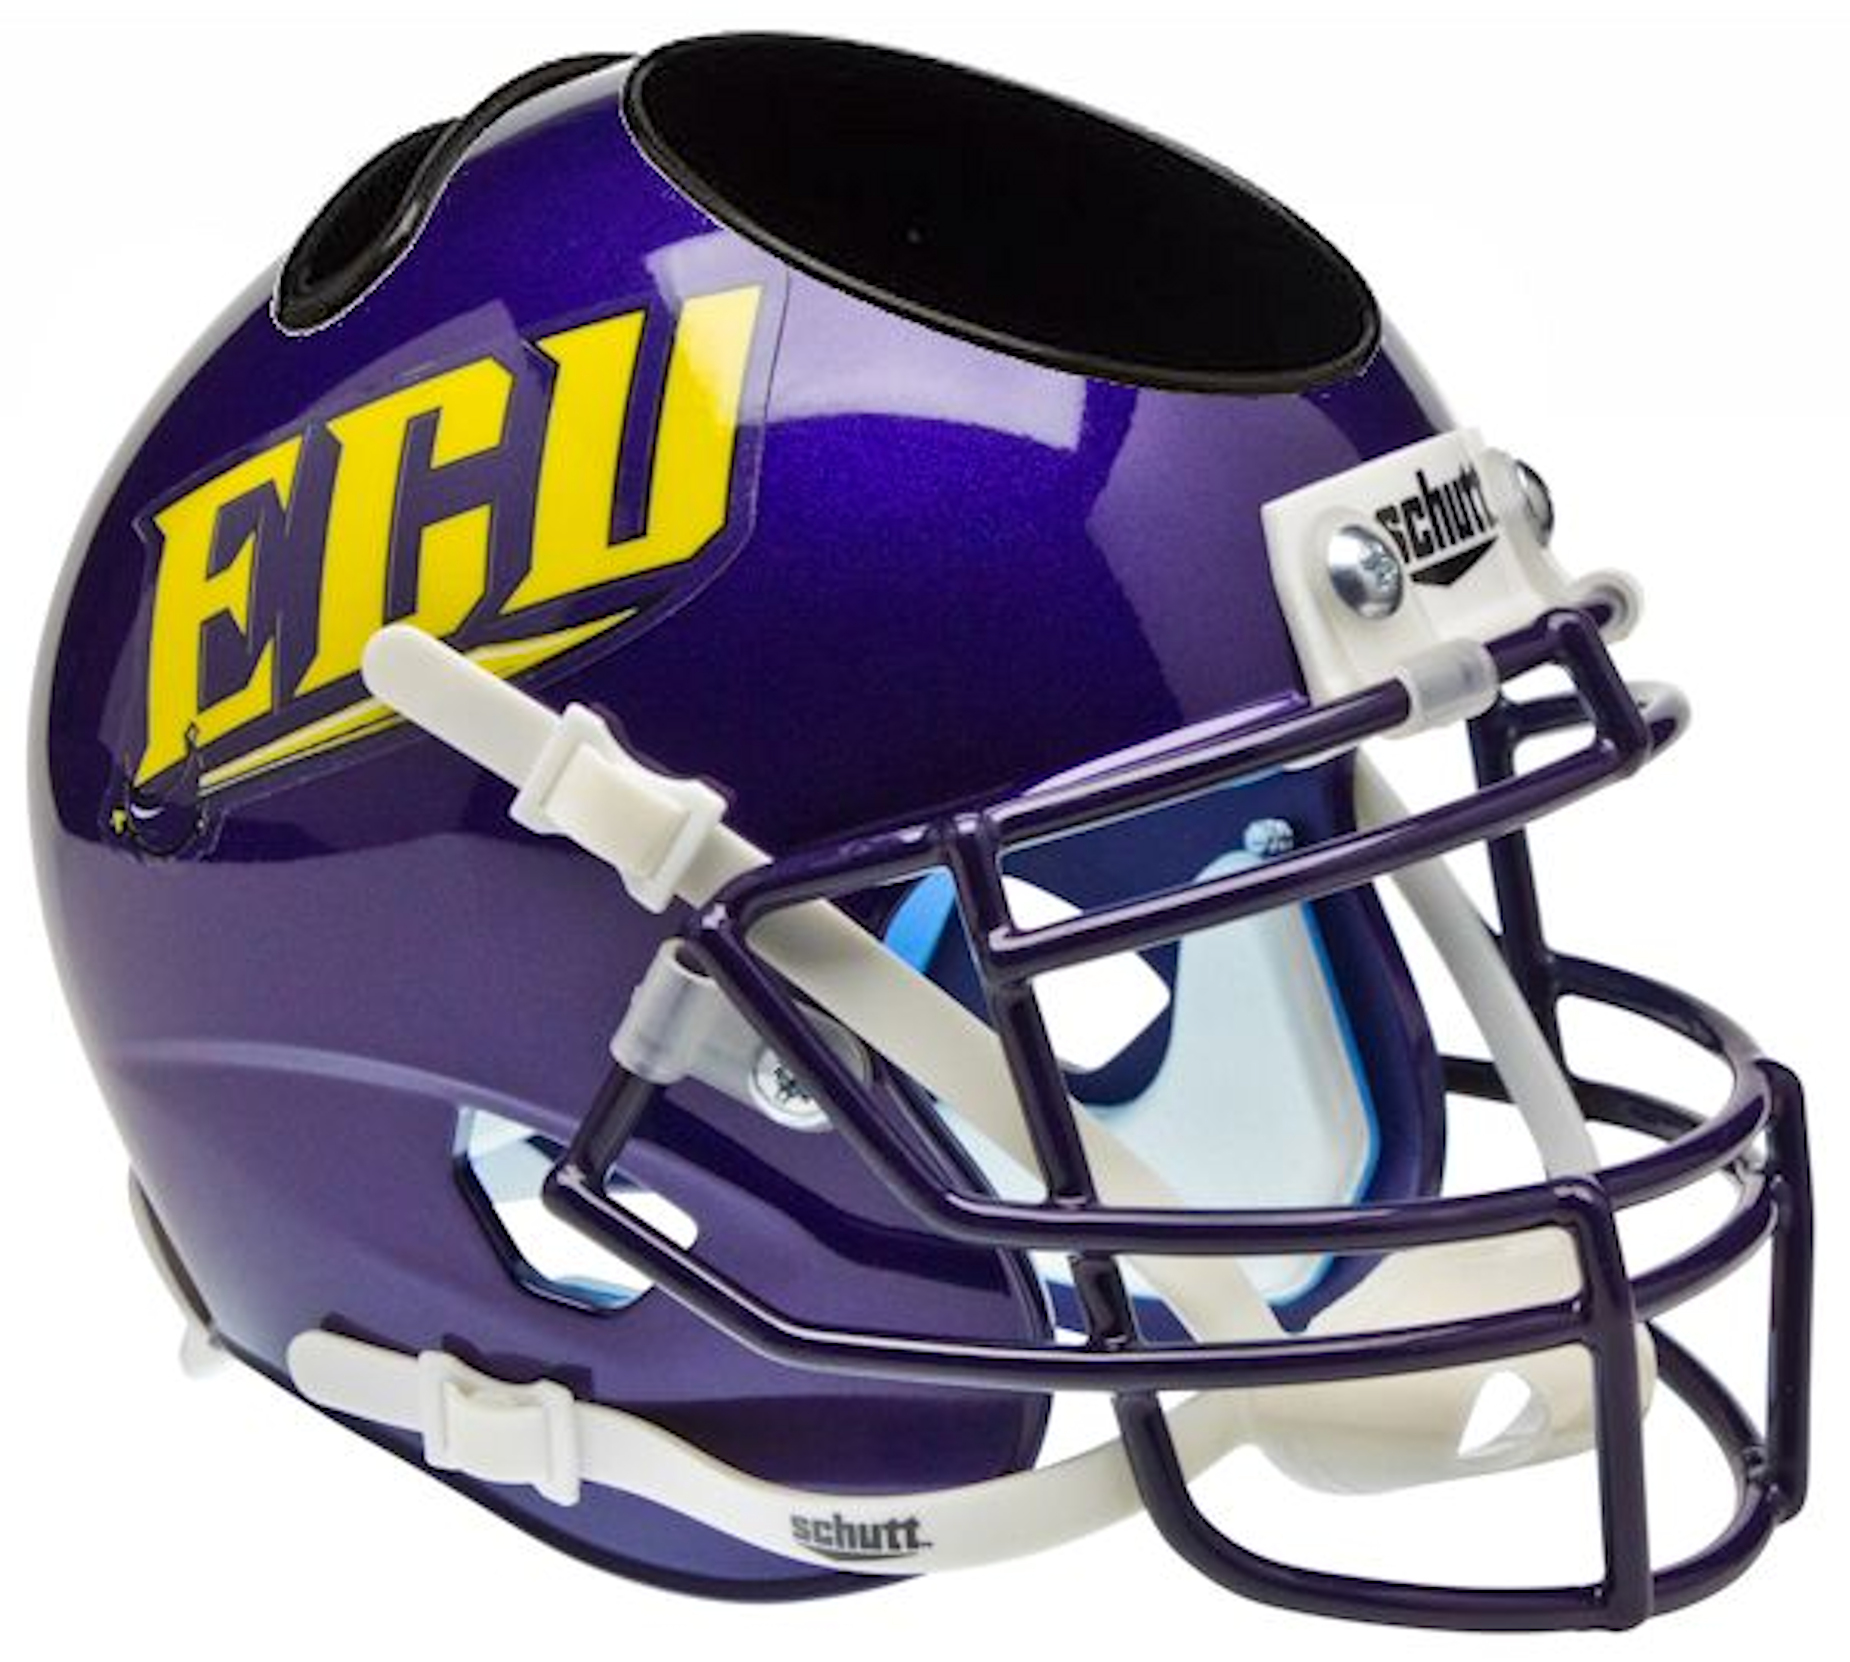 East Carolina Pirates Miniature Football Helmet Desk Caddy <B>ECU</B>